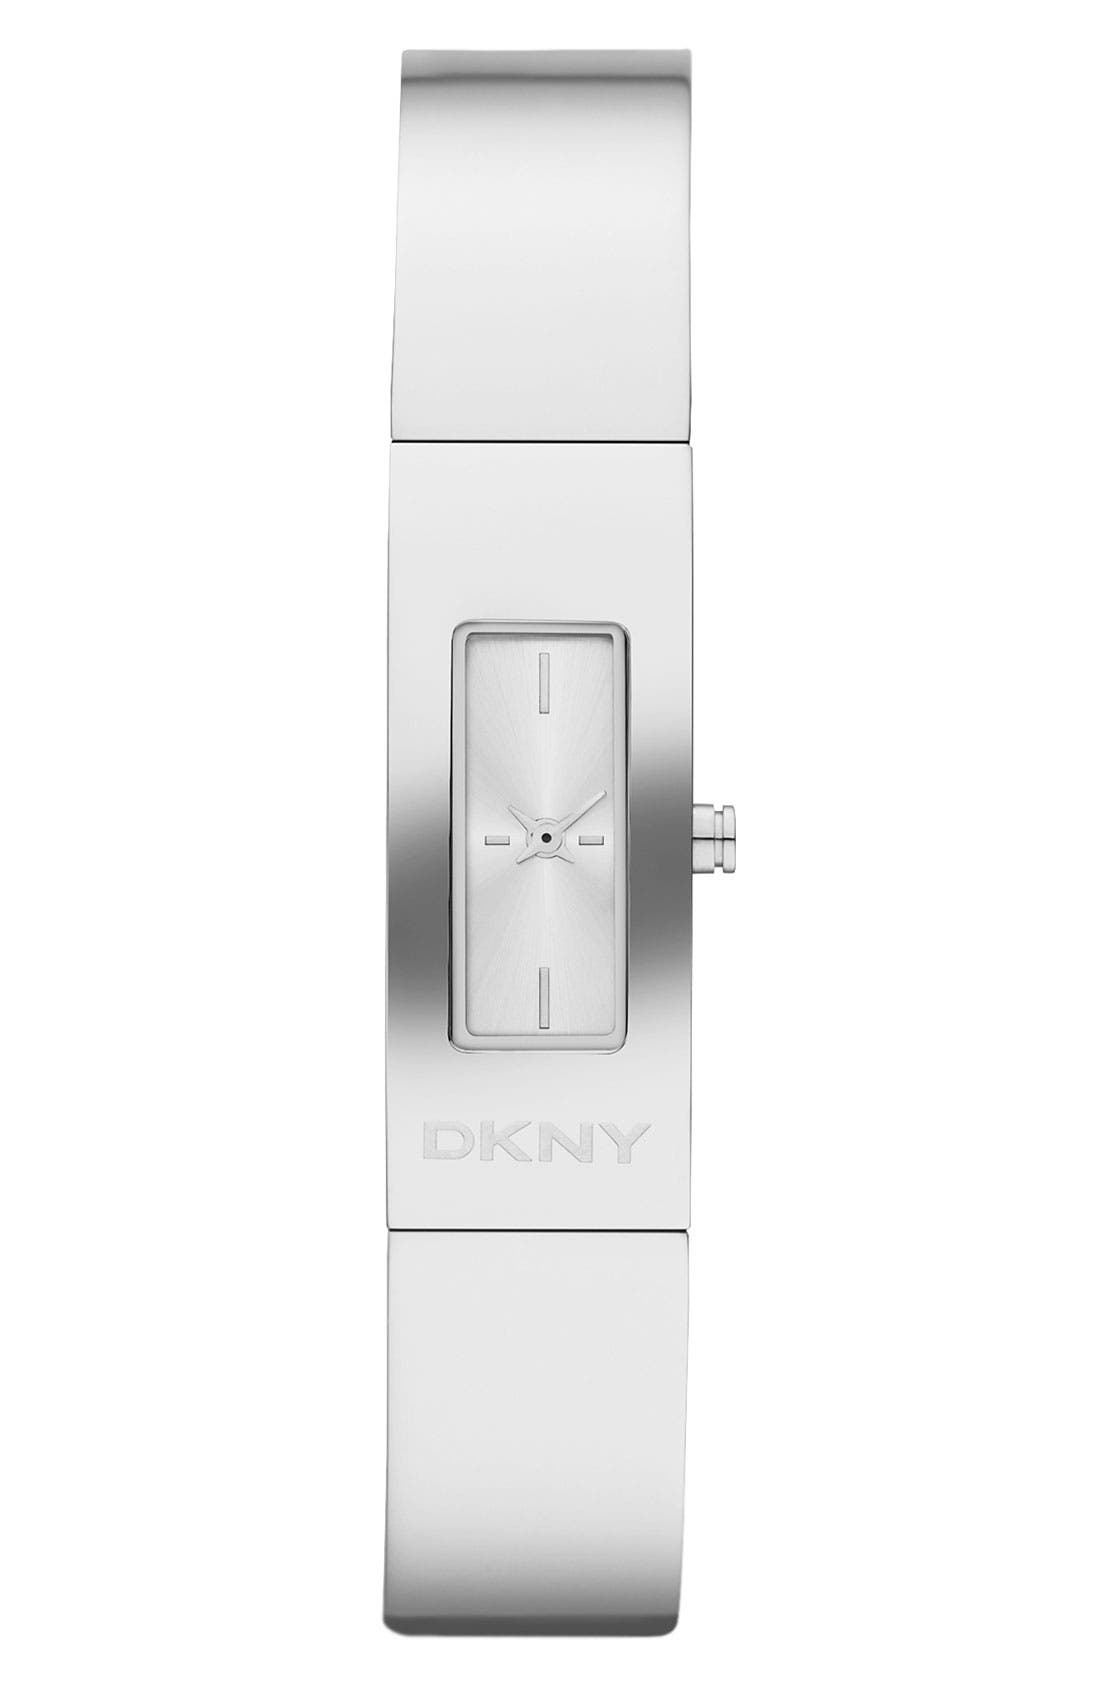 Main Image - DKNY 'Beekman' Logo Bangle Watch, 13mm x 33mm